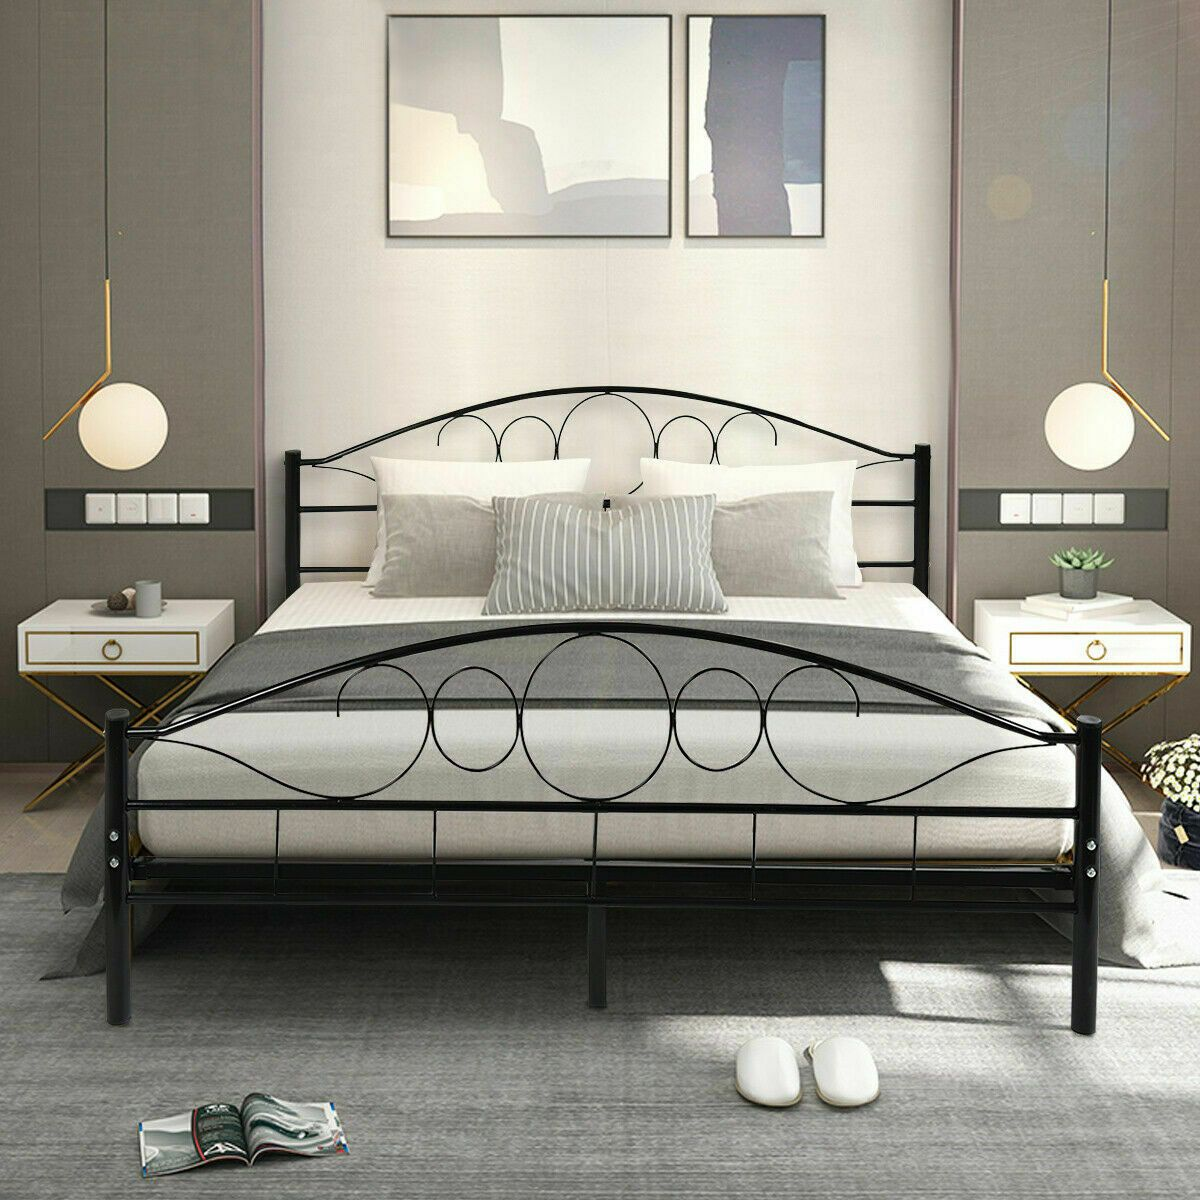 Pin By Marni Stratton On House Ideas In 2020 Steel Bed Frame